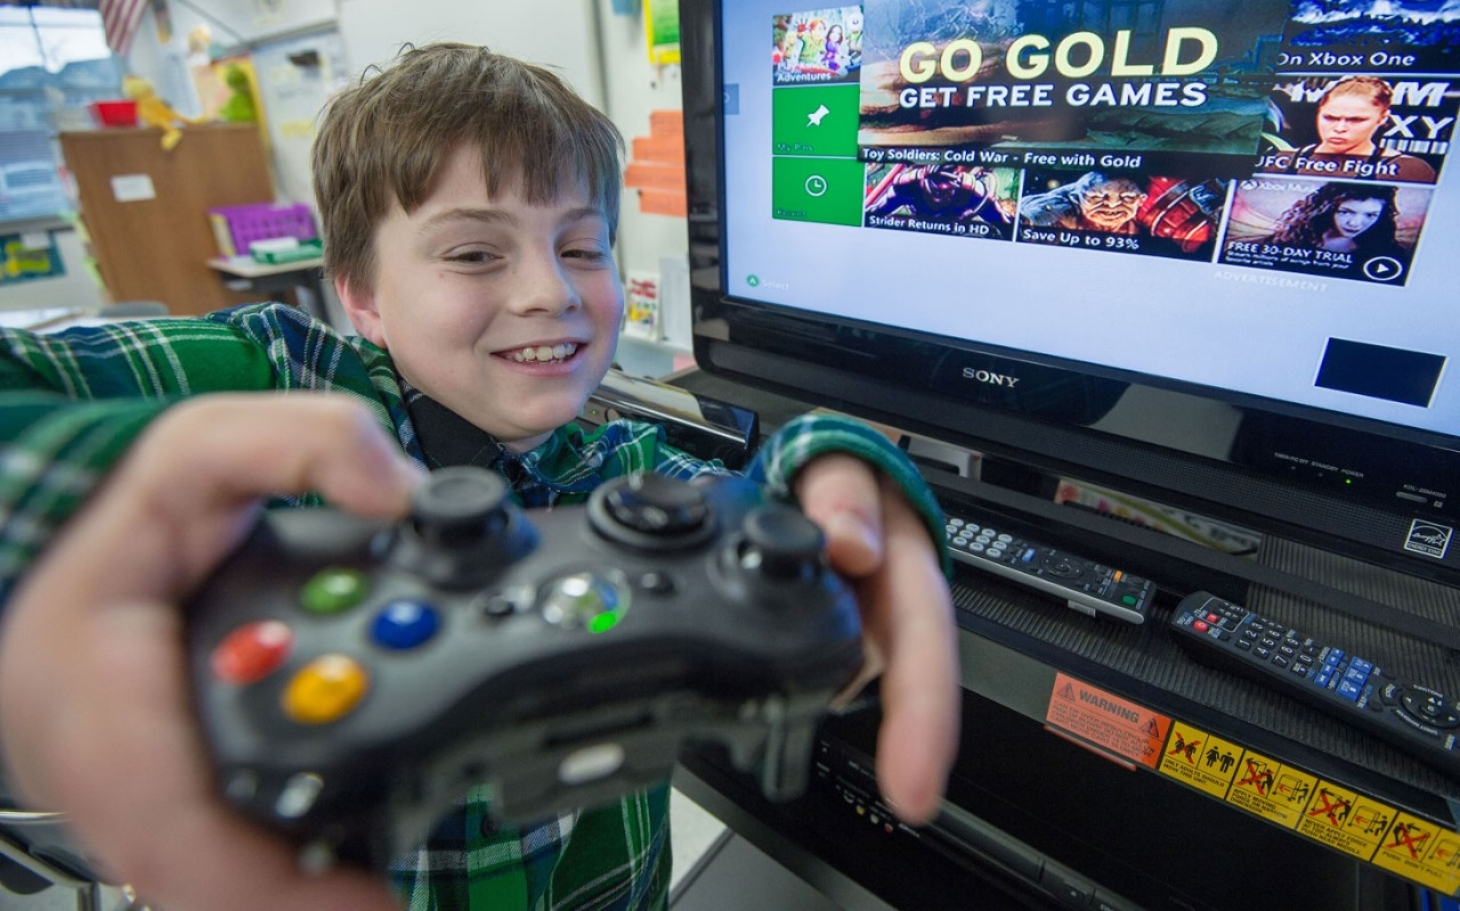 Gamifying the classroom is a bad idea   Al Jazeera America